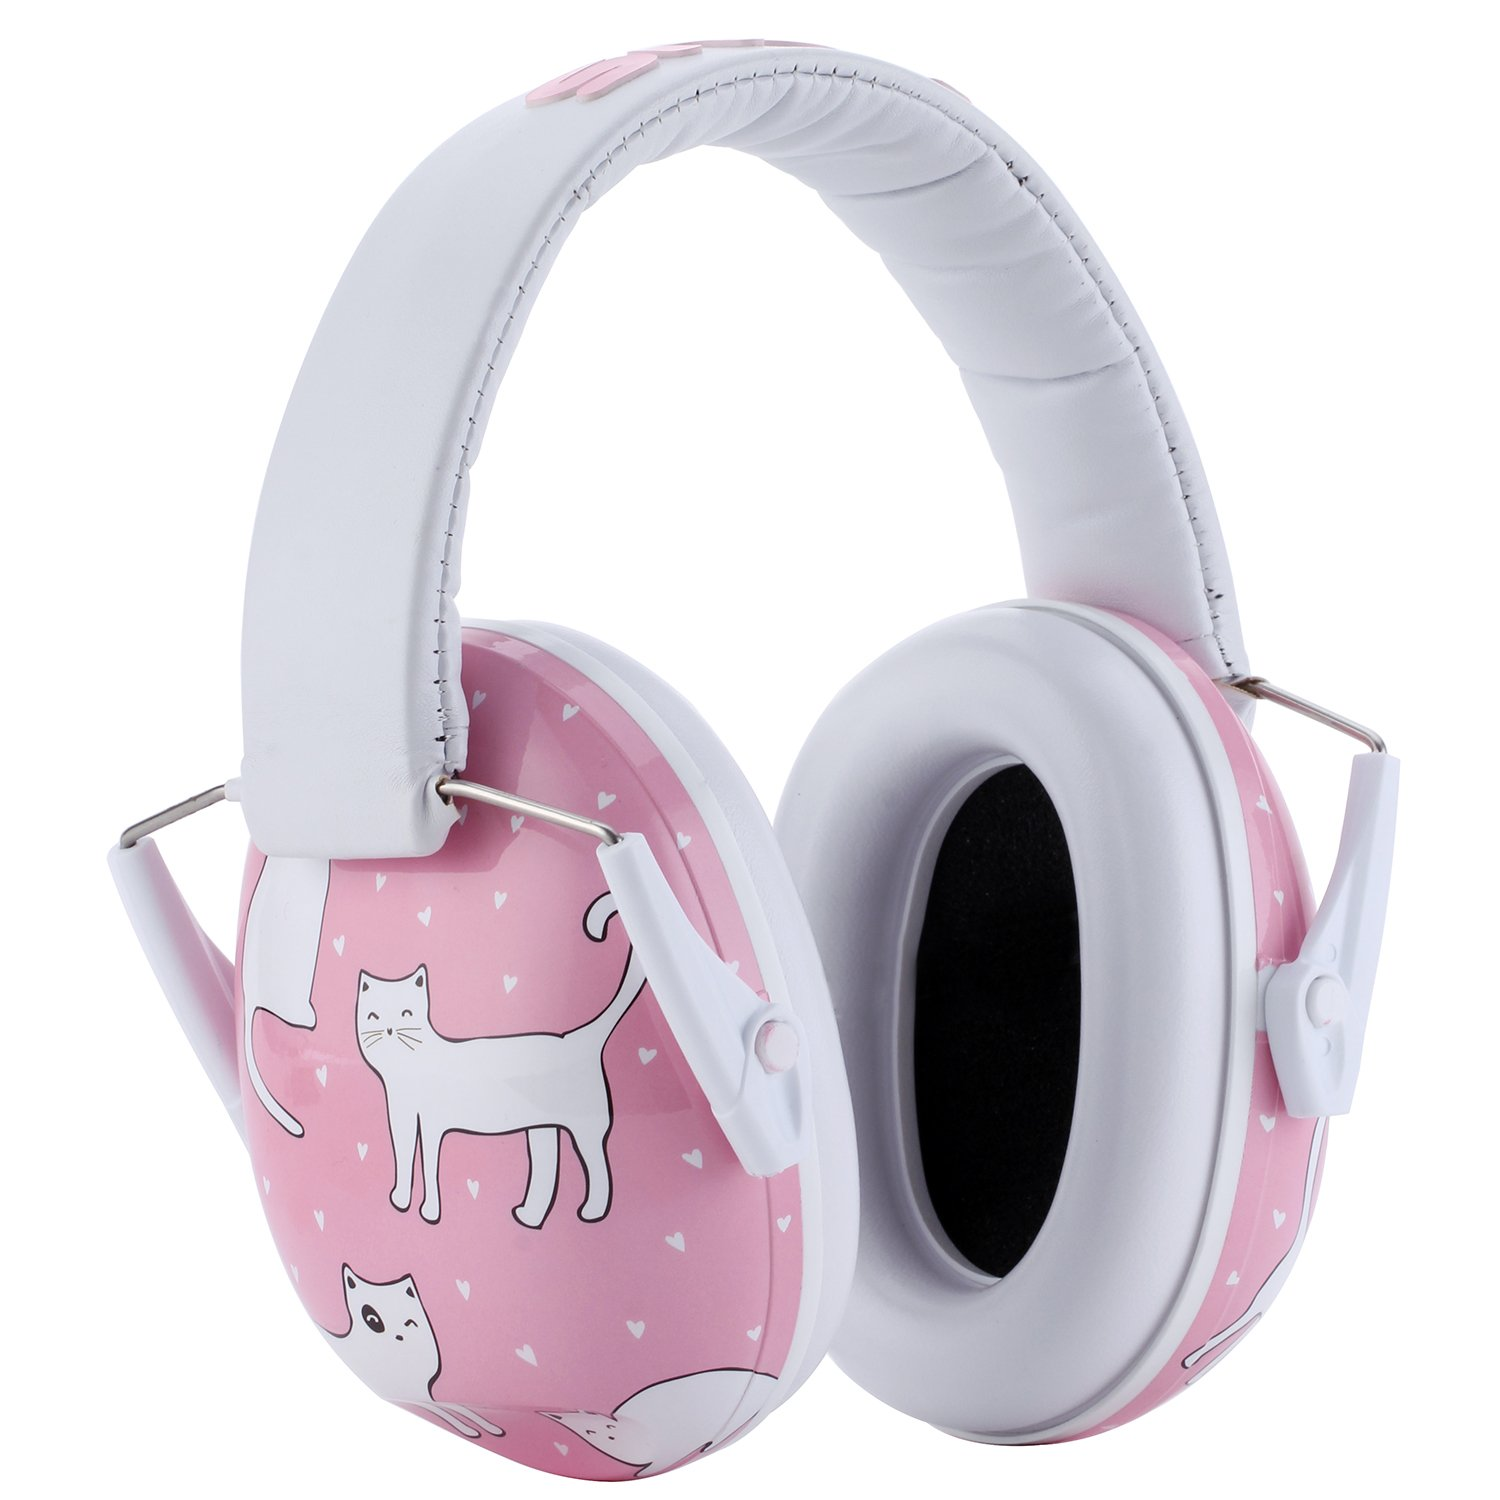 Snug Kids Earmuffs/Hearing Protectors – Adjustable Headband Ear Defenders for Children and Adults (Cats) by Snug (Image #4)